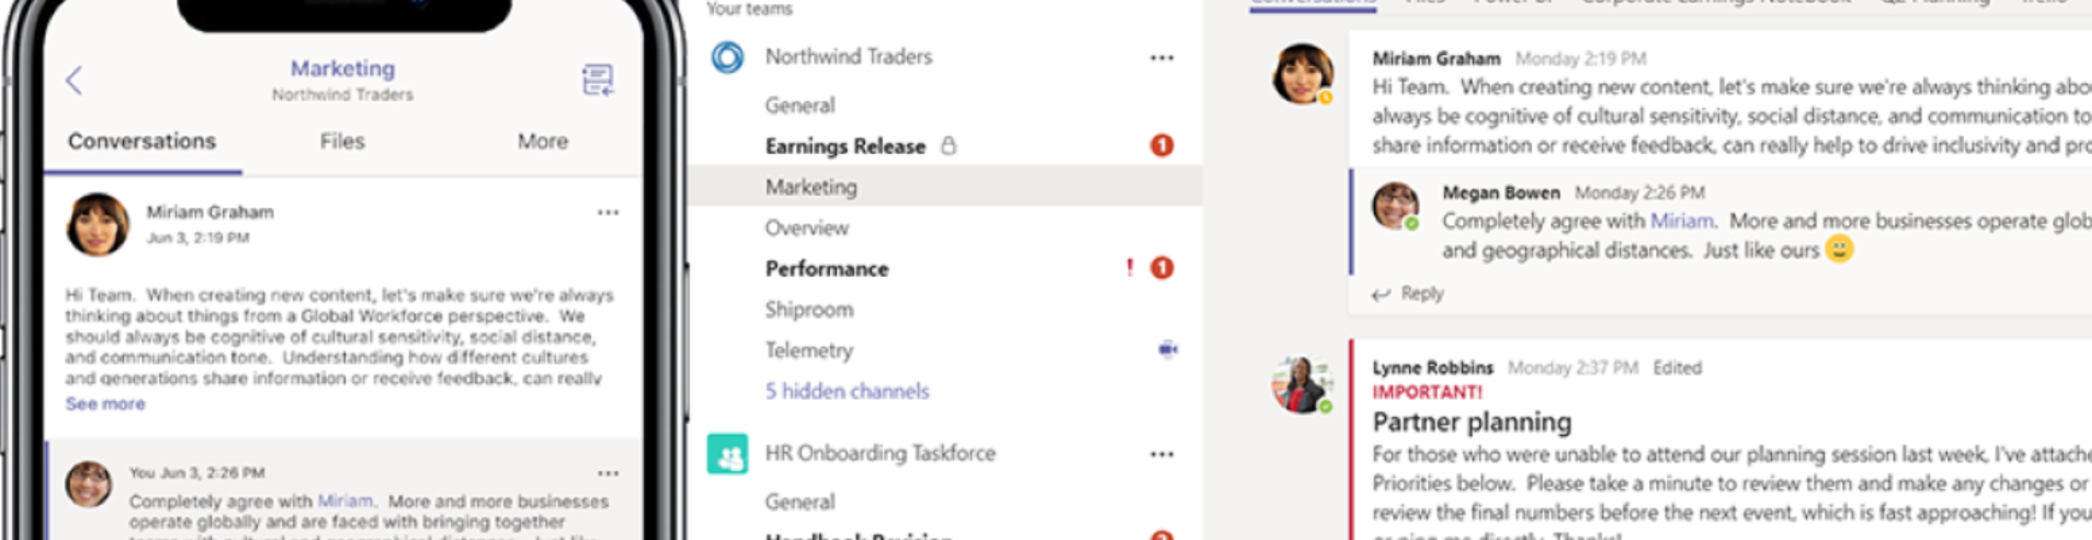 Stimulate work from home with free Microsoft Teams